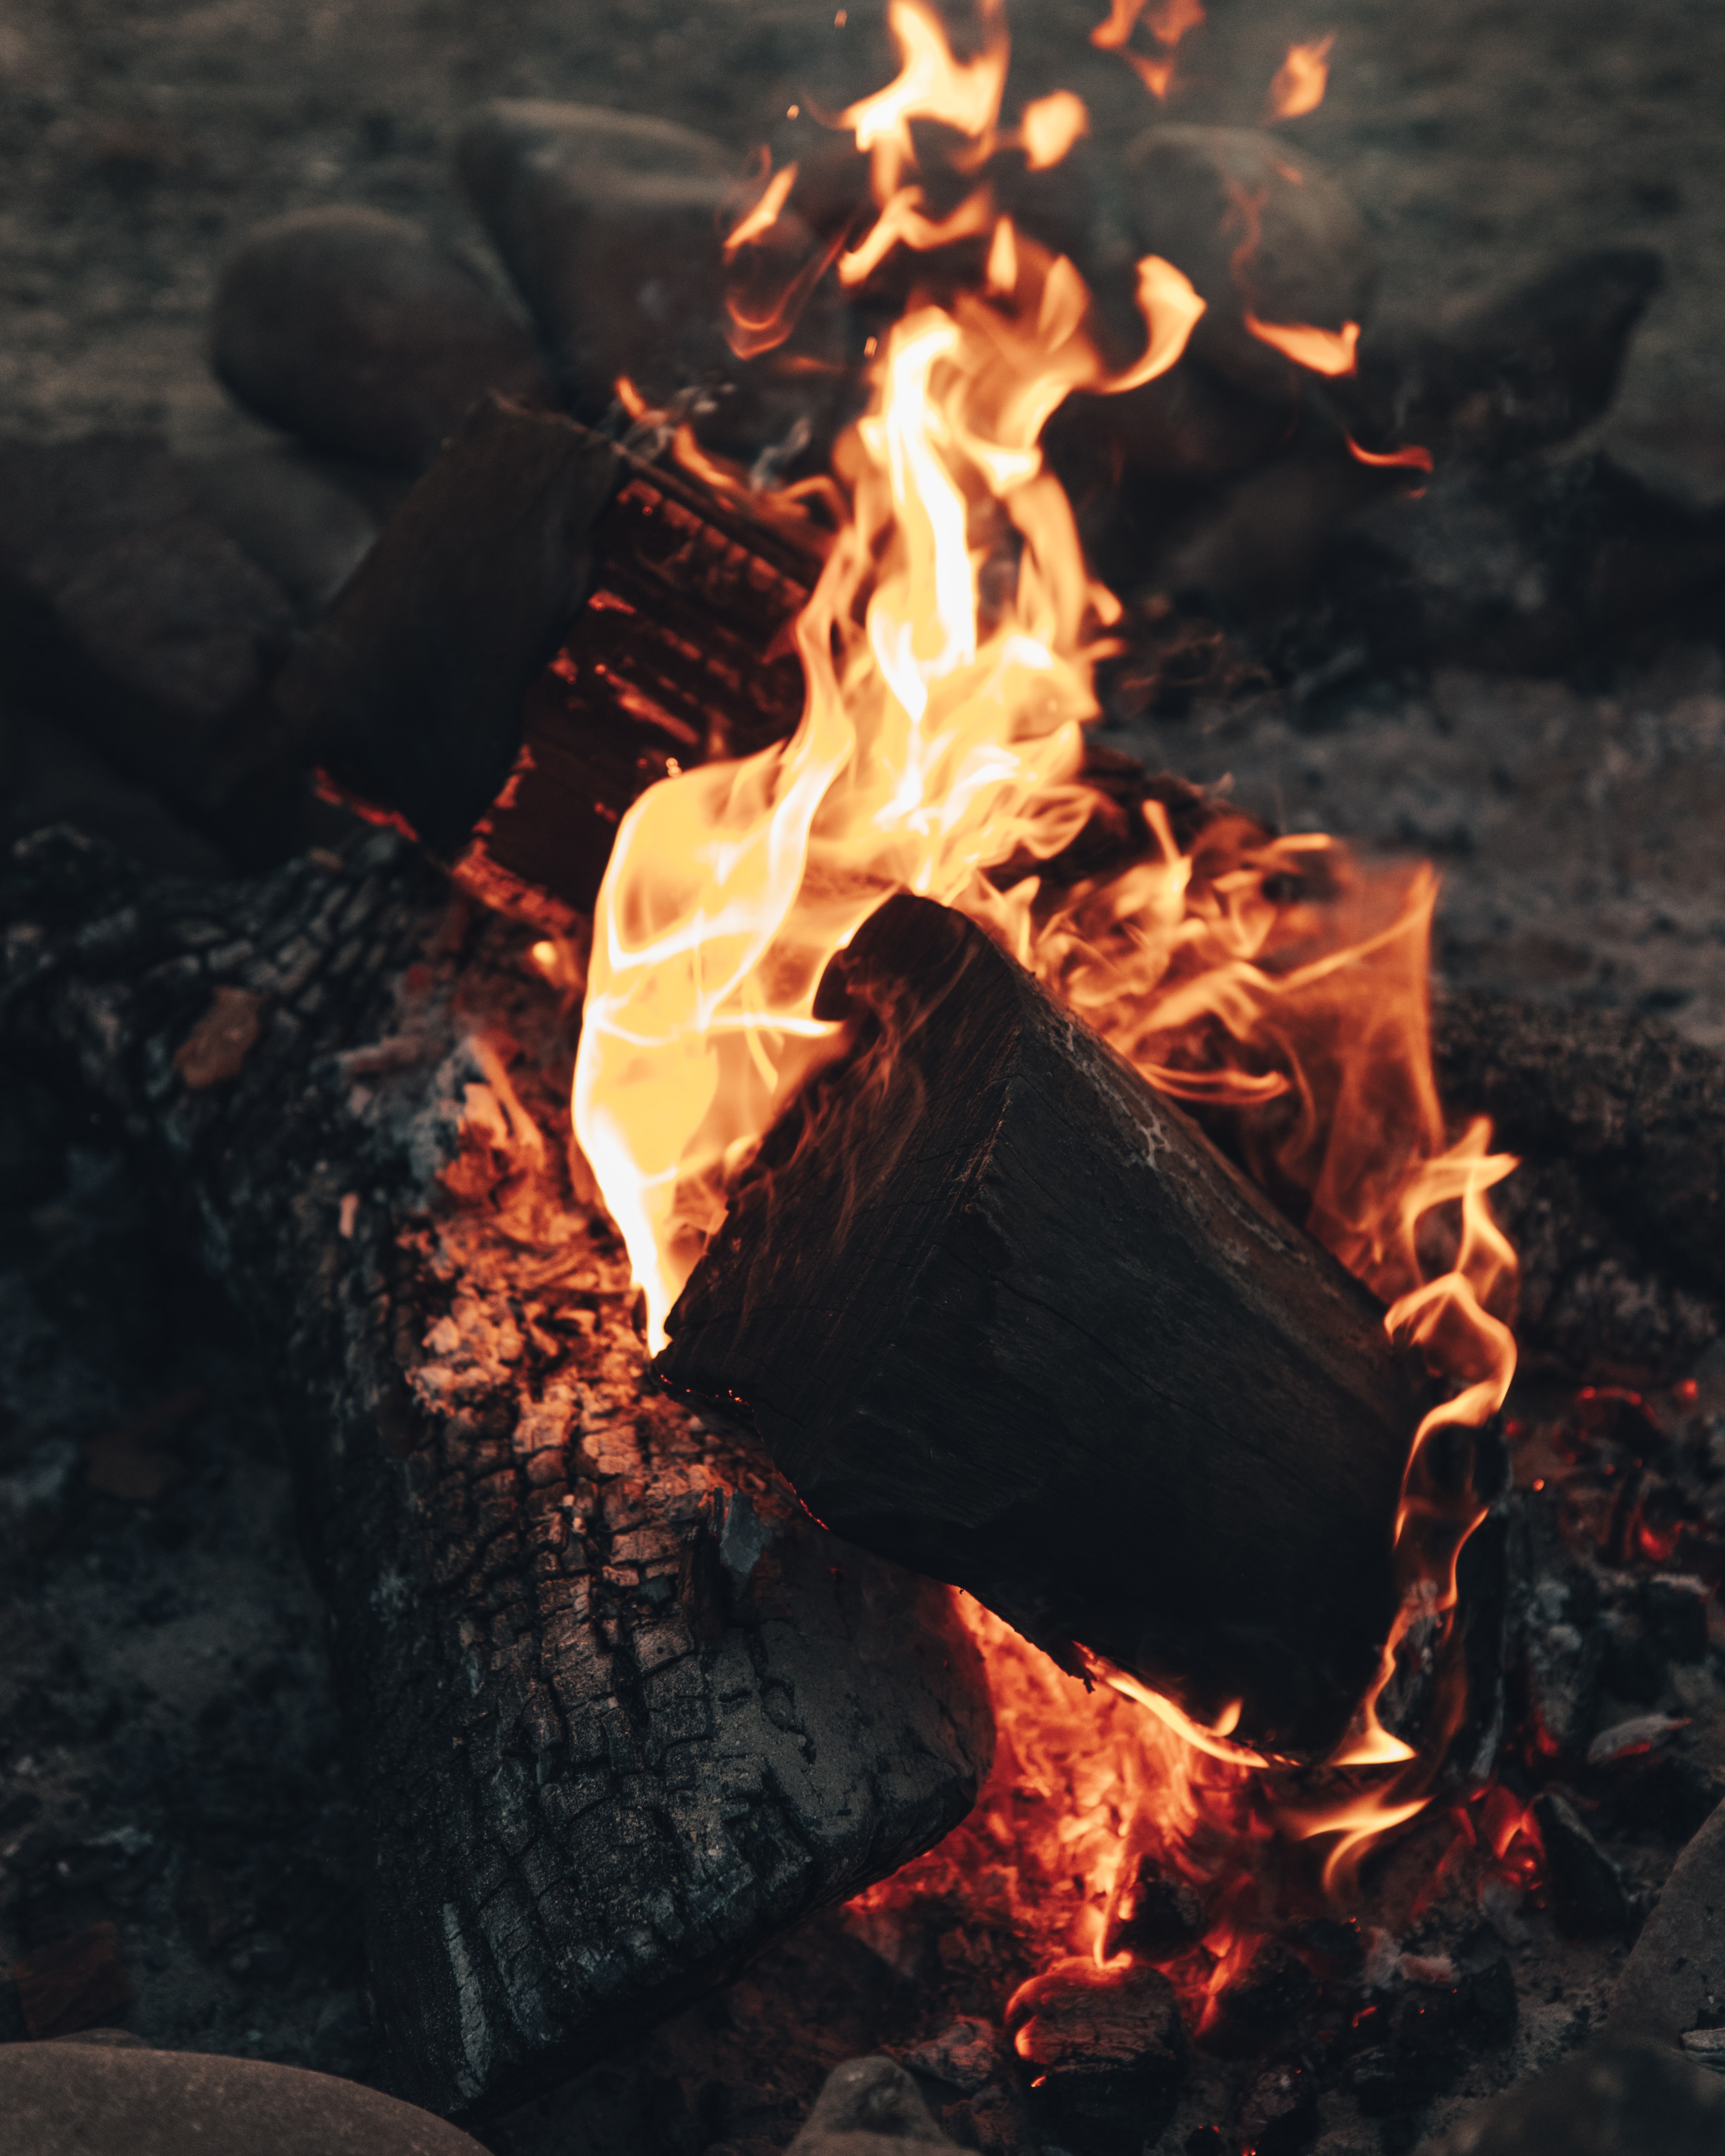 88038 Screensavers and Wallpapers Firewood for phone. Download Fire, Bonfire, Coals, Flame, Miscellanea, Miscellaneous, Firewood, Heat, Fever pictures for free